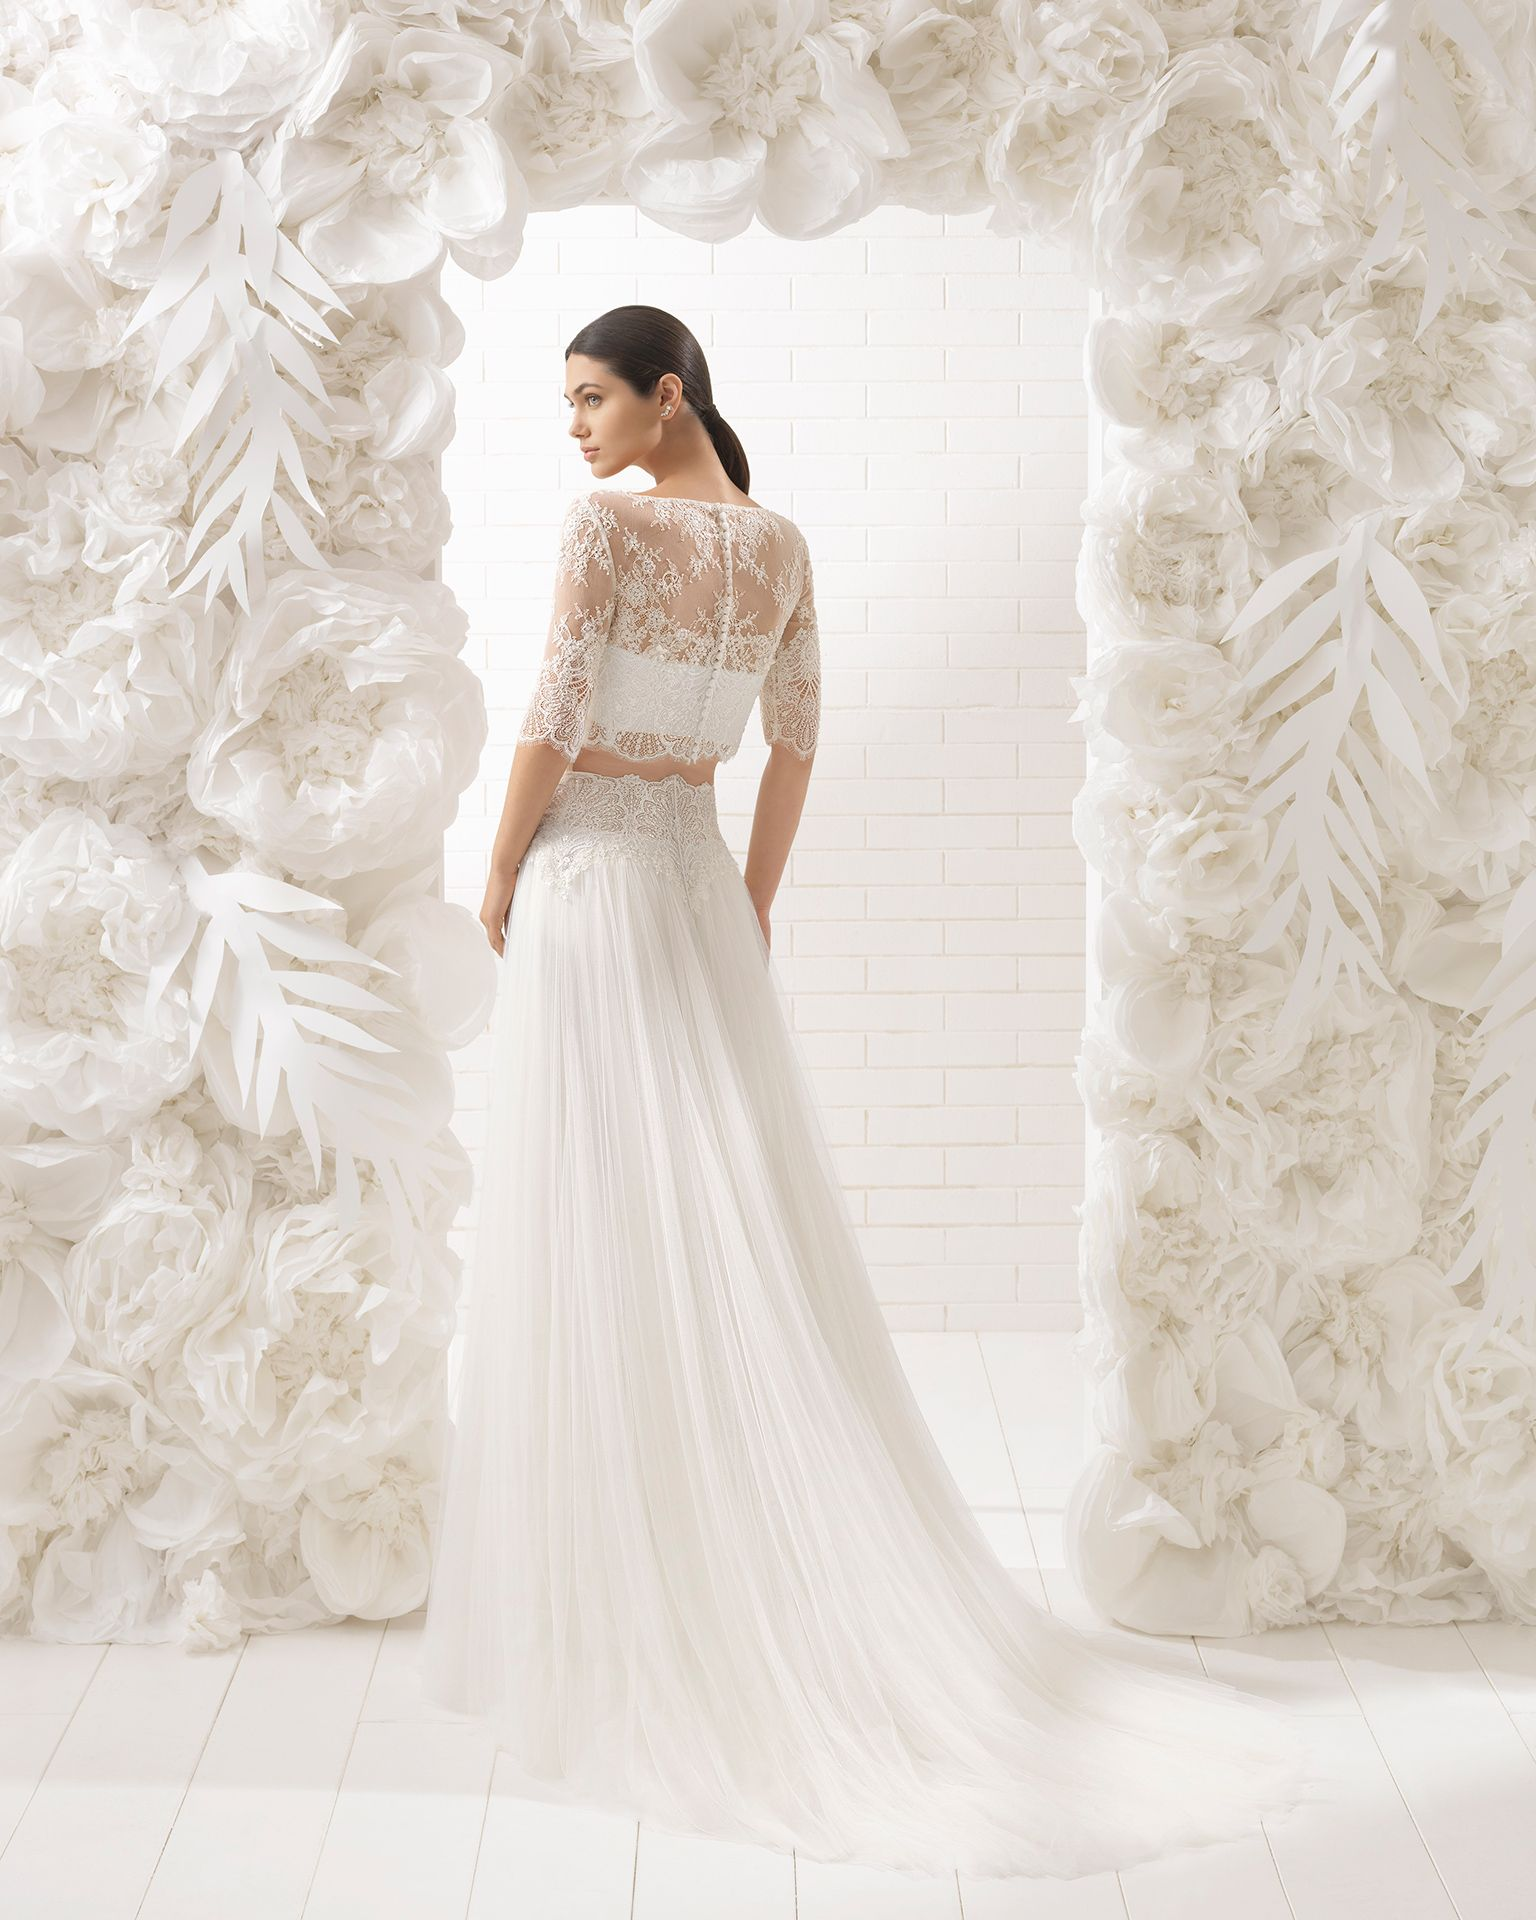 Lindsay bridal collection rosa clará soft collection